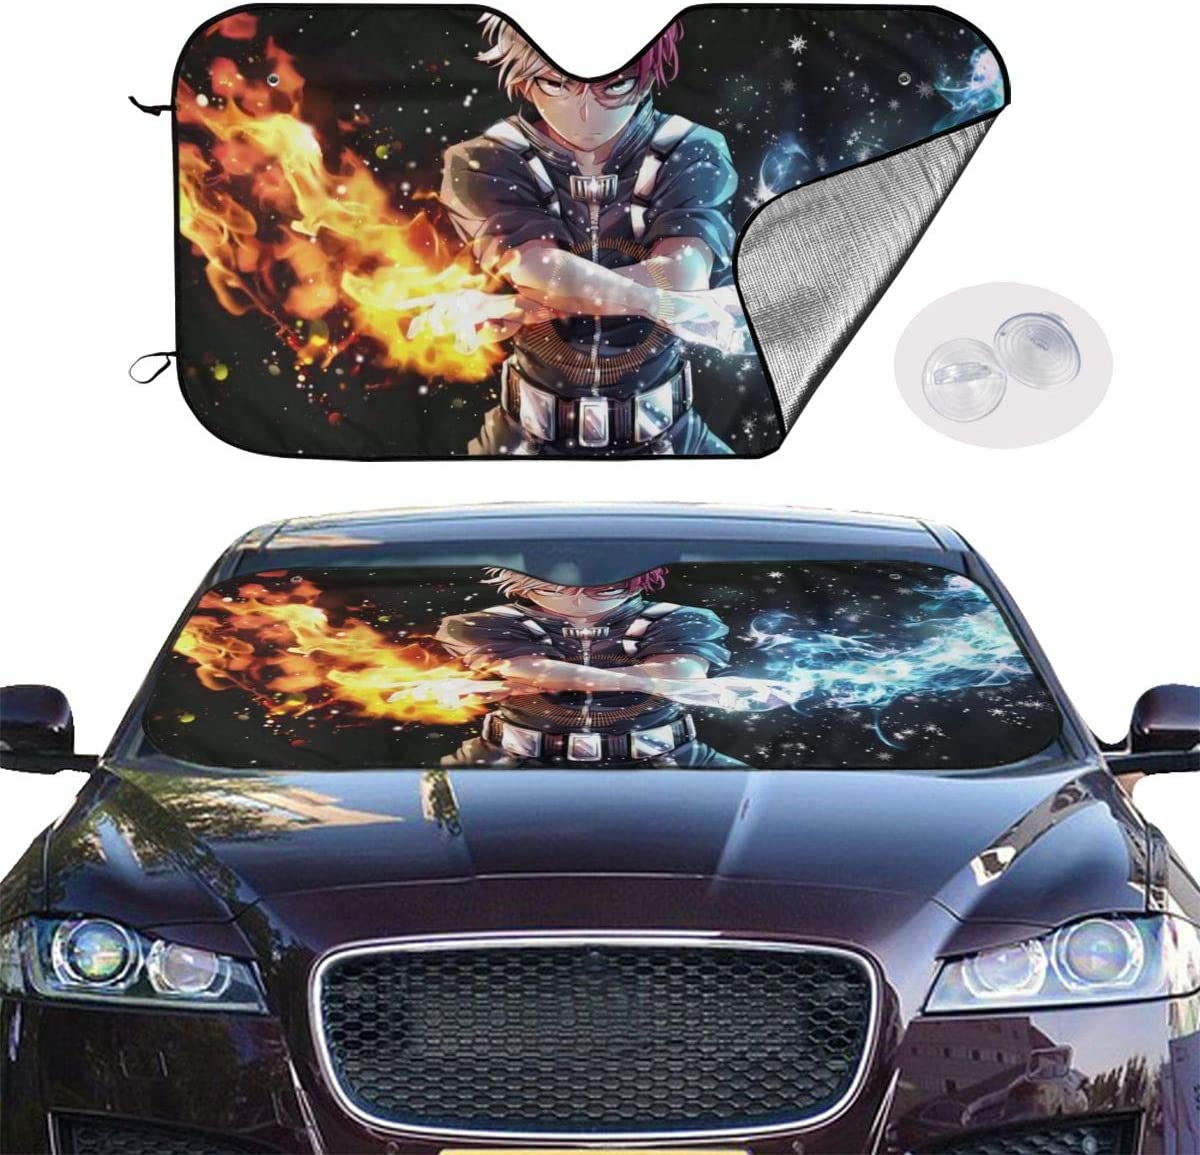 YRAI Anime My Hero Academia Car Sun Shade Windshield Sunshade Universal for Cars SUV Truck Protects Interior Cool S Blocks UV Radiation